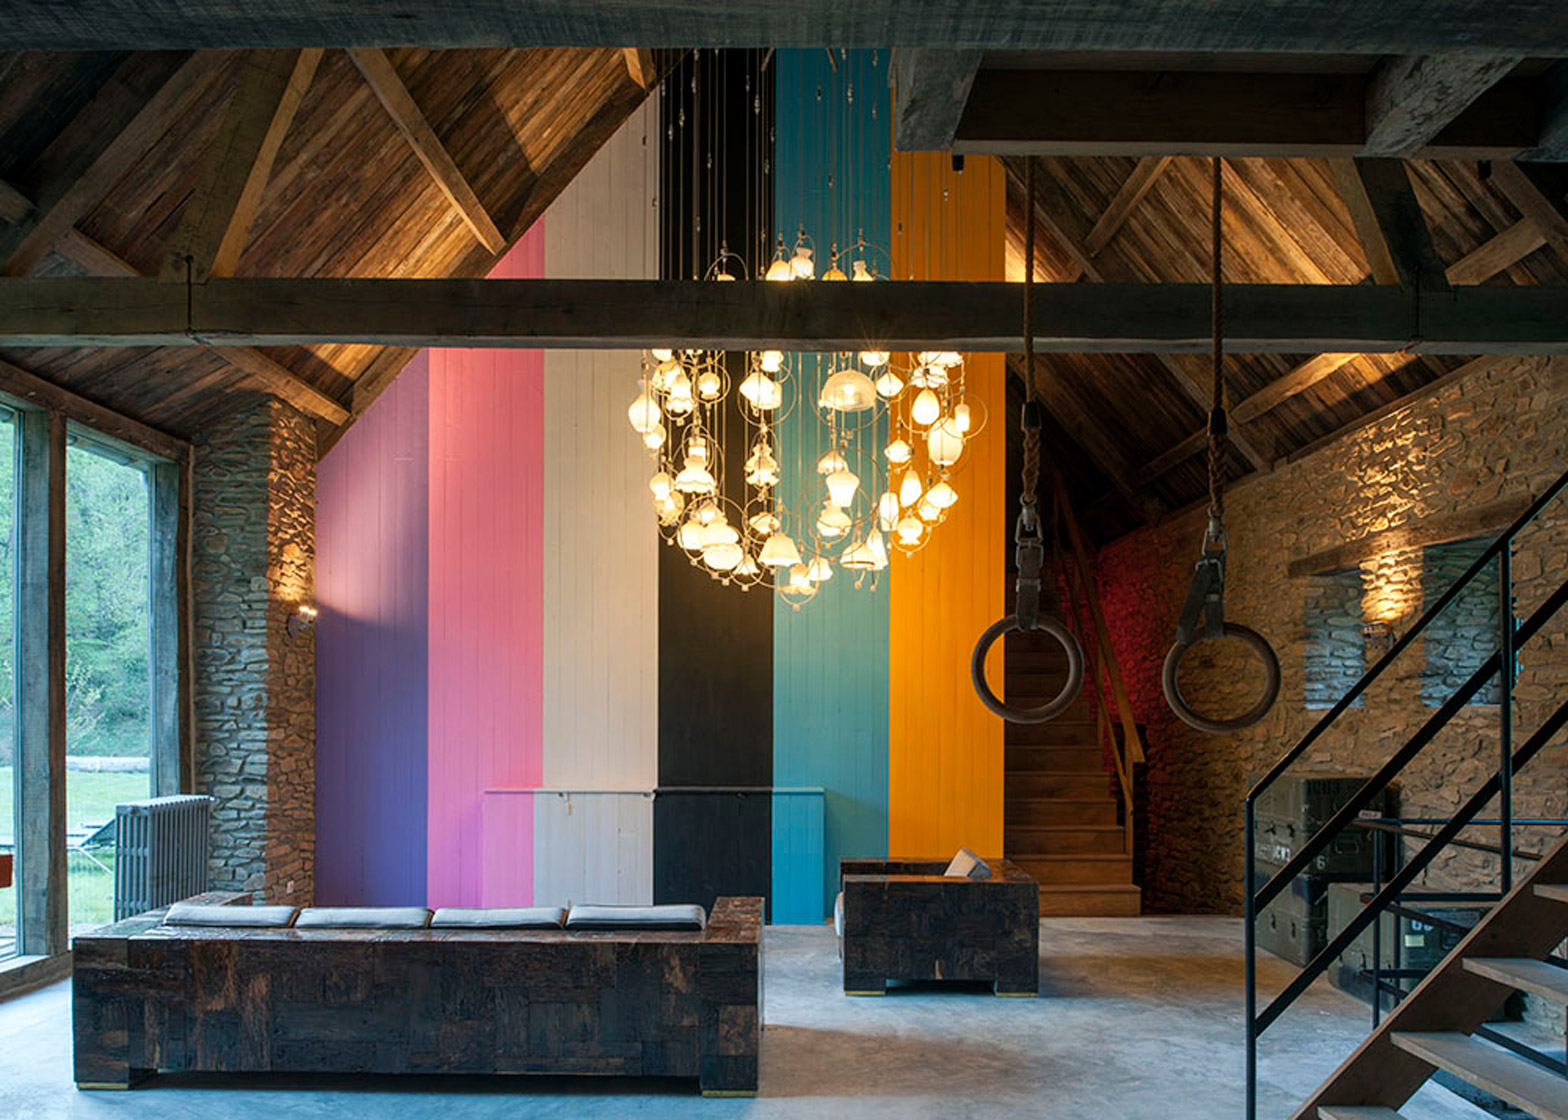 Le Moulin and Le Four by Piet Hein Eek